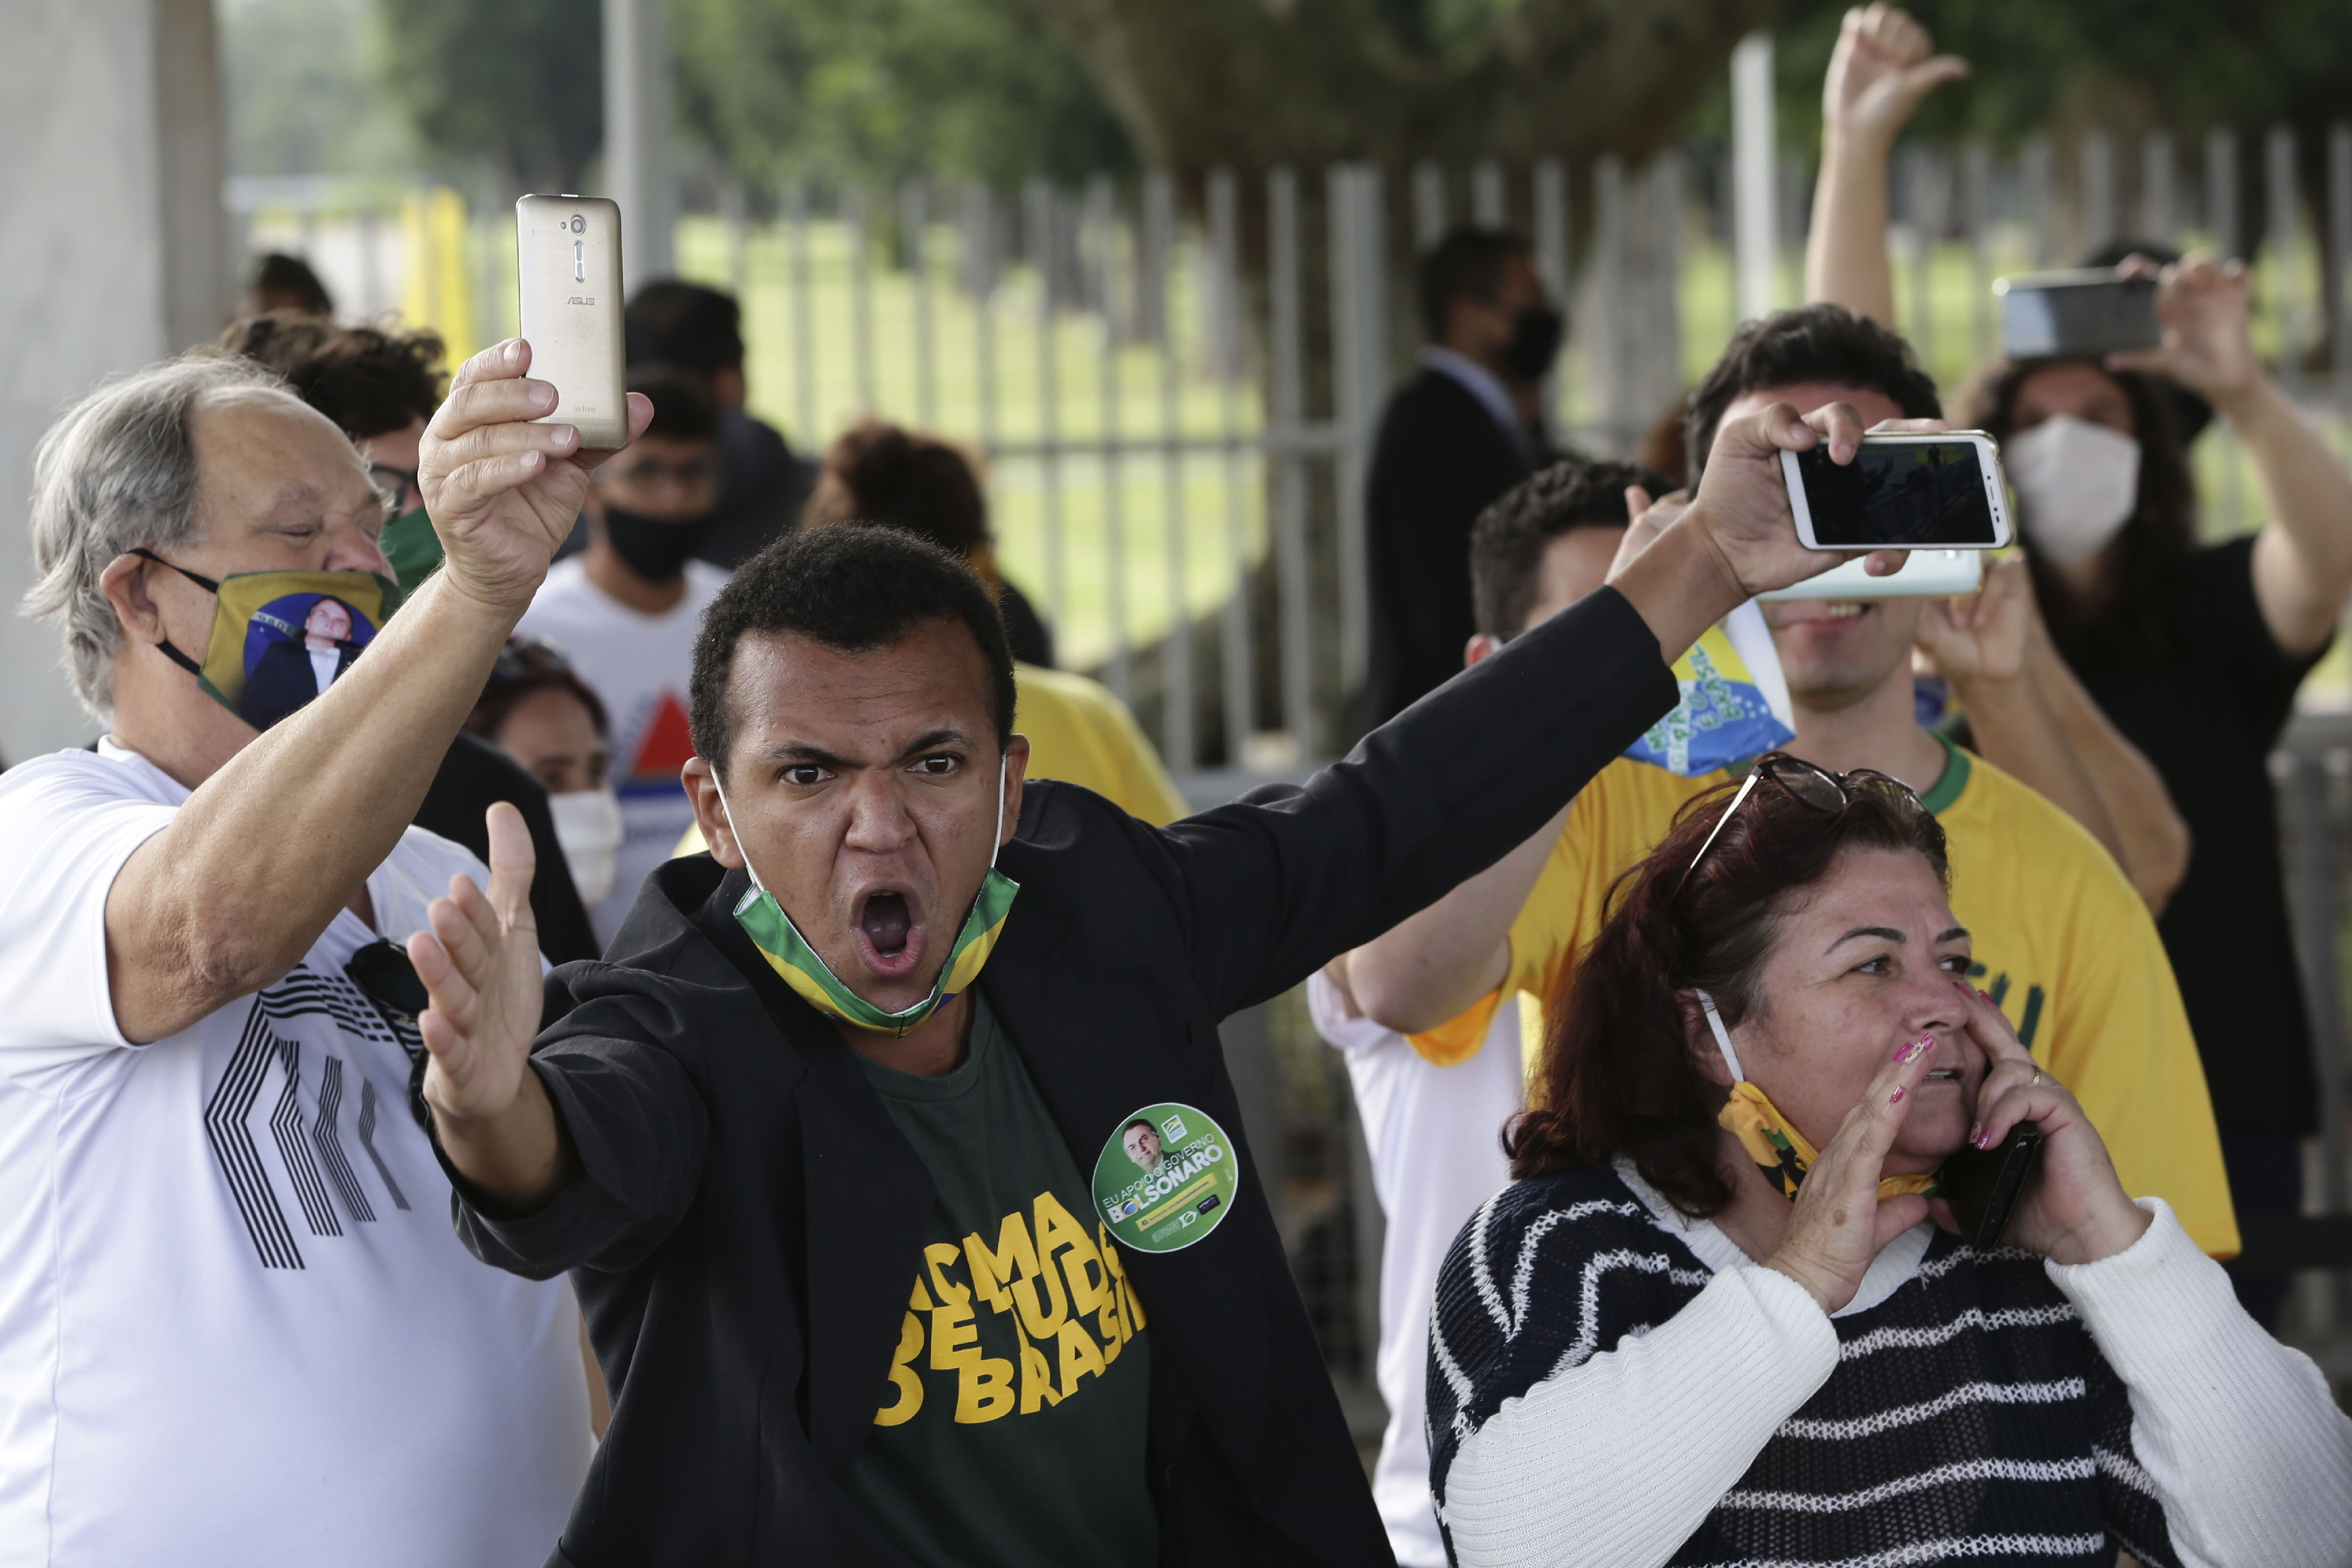 """Supporters of Brazil's President Jair Bolsonaro, wearing face masks amid the new coronavirus pandemic, yell out against journalists, calling them """"trash"""" and """"coup plotters,"""" after the president's departure from his official residence of Alvorada palace in Brasilia, Brazil, Monday, May 25, 2020. (AP Photo/Eraldo Peres)"""